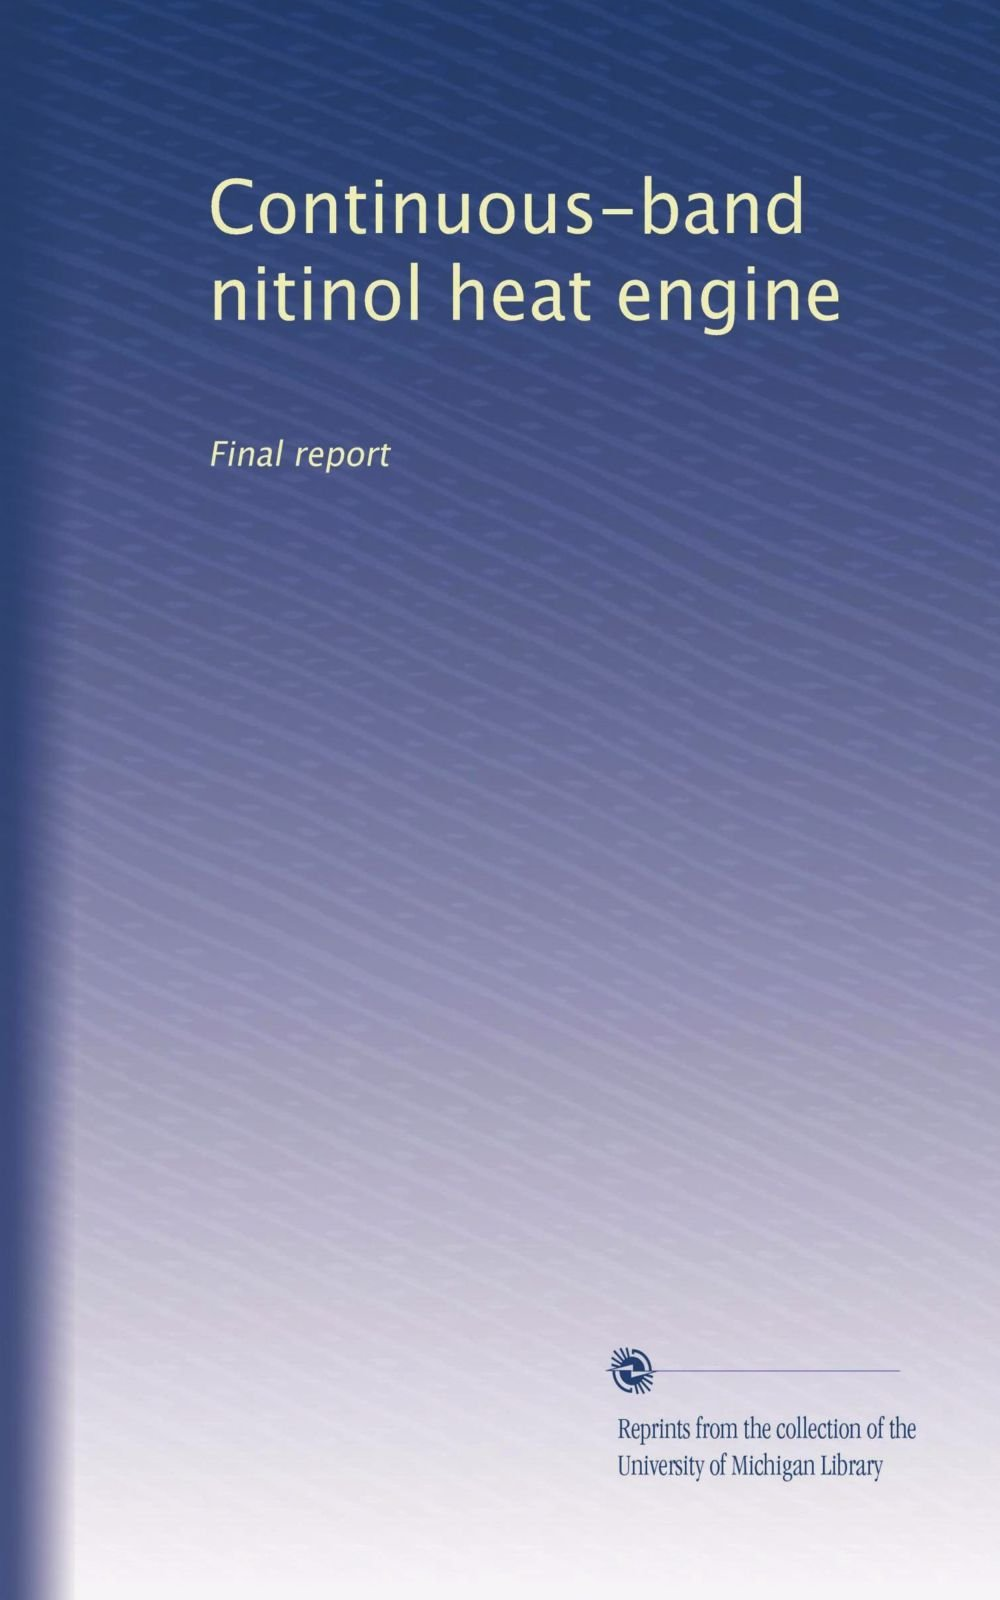 Continuous-band nitinol heat engine: Final report: Unknown